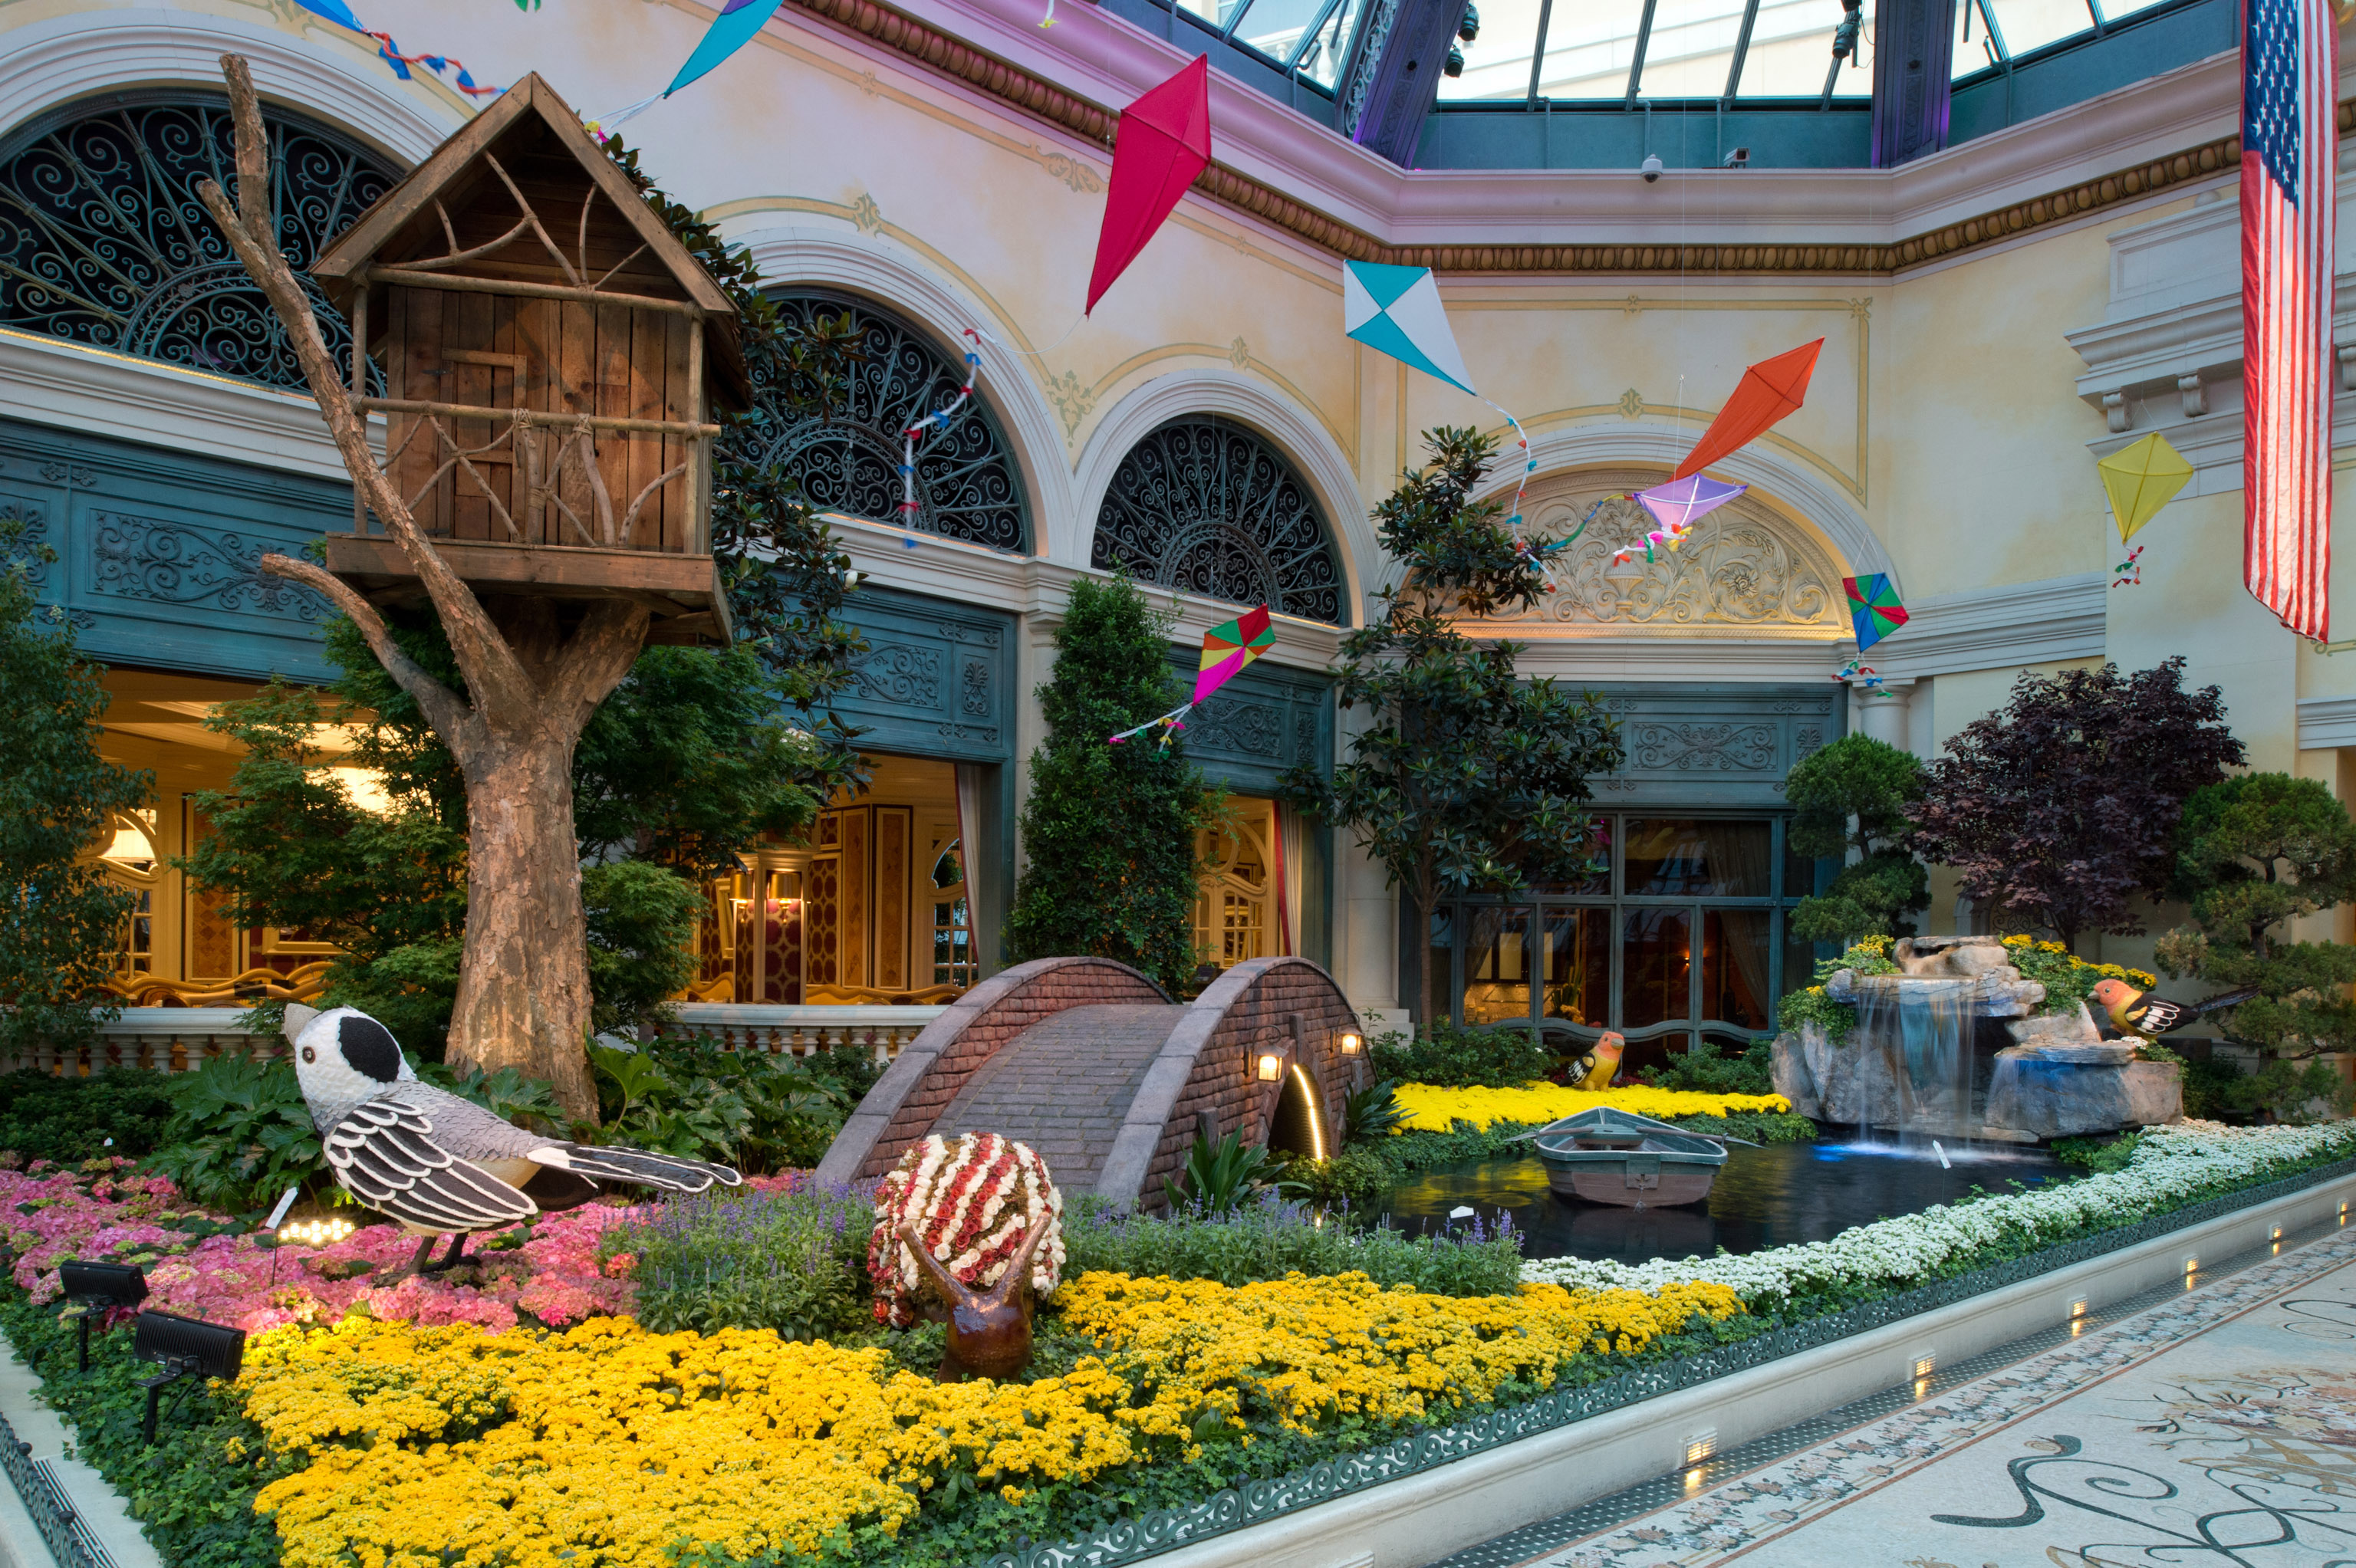 Bellagio Conservatory In Vegas Pays Colorful Homage To